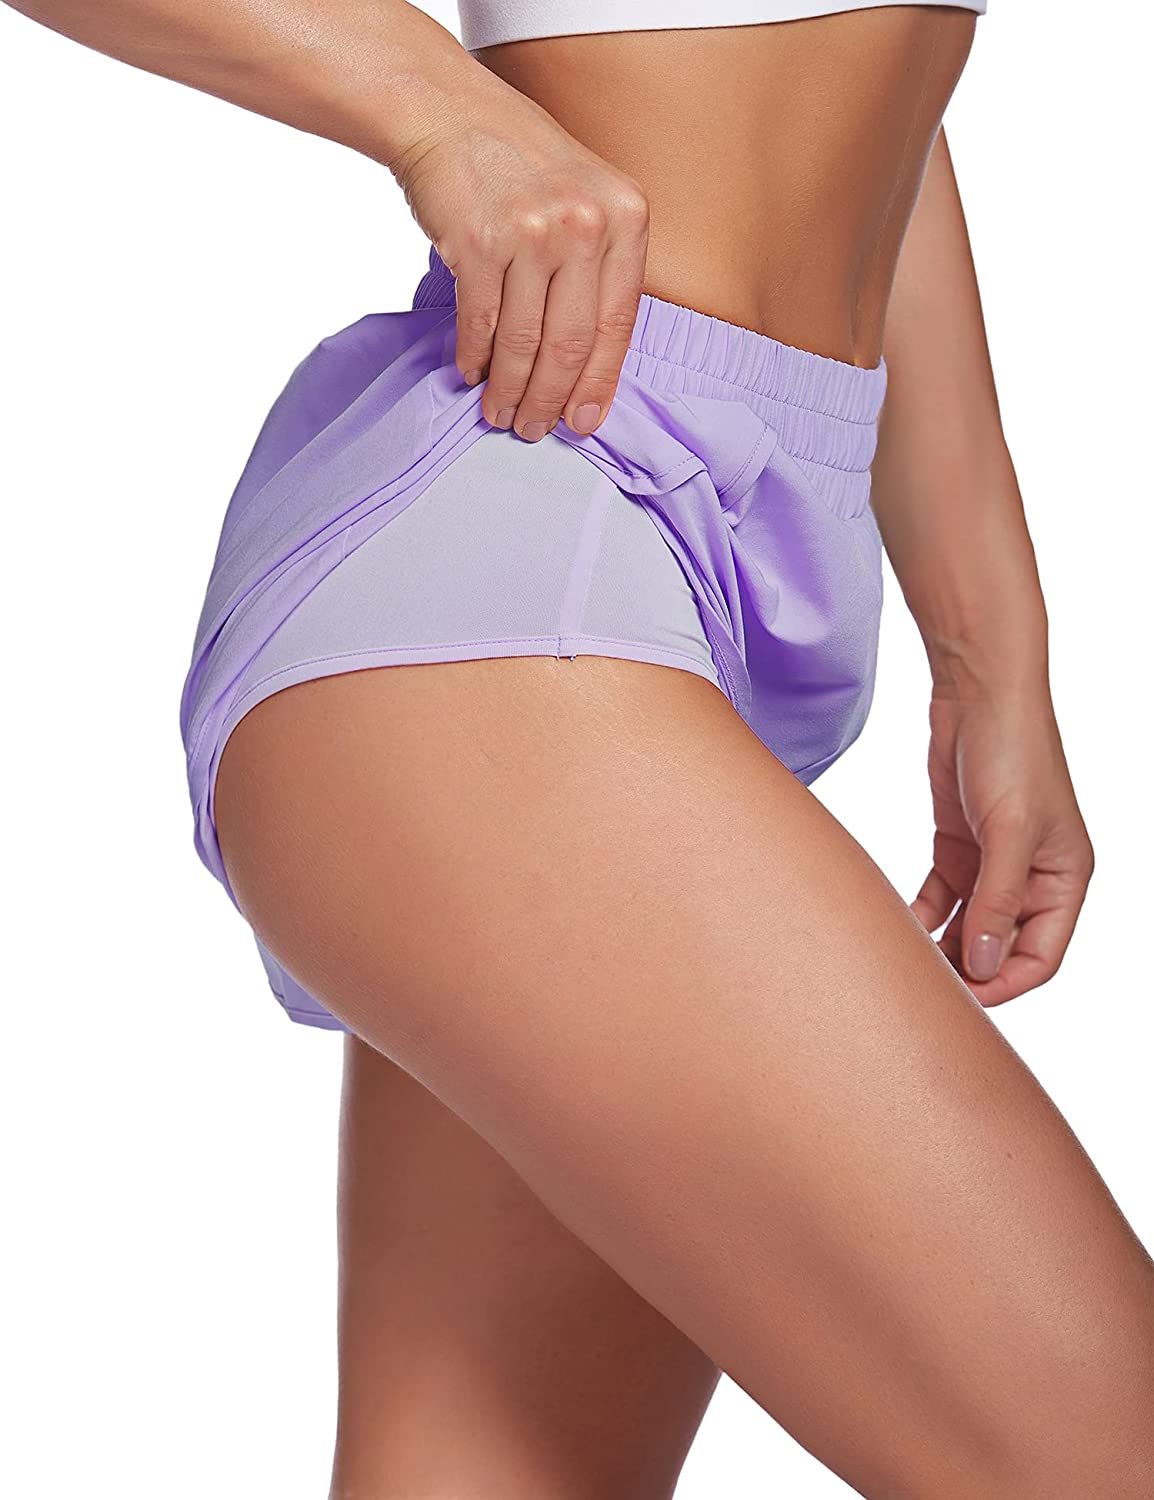 LaLaLa Womens Workout Shorts with Zip Pocket Quick-Dry Athletic Shorts Sports Elastic Waist Running Shorts with Liner : Sports & Outdoors